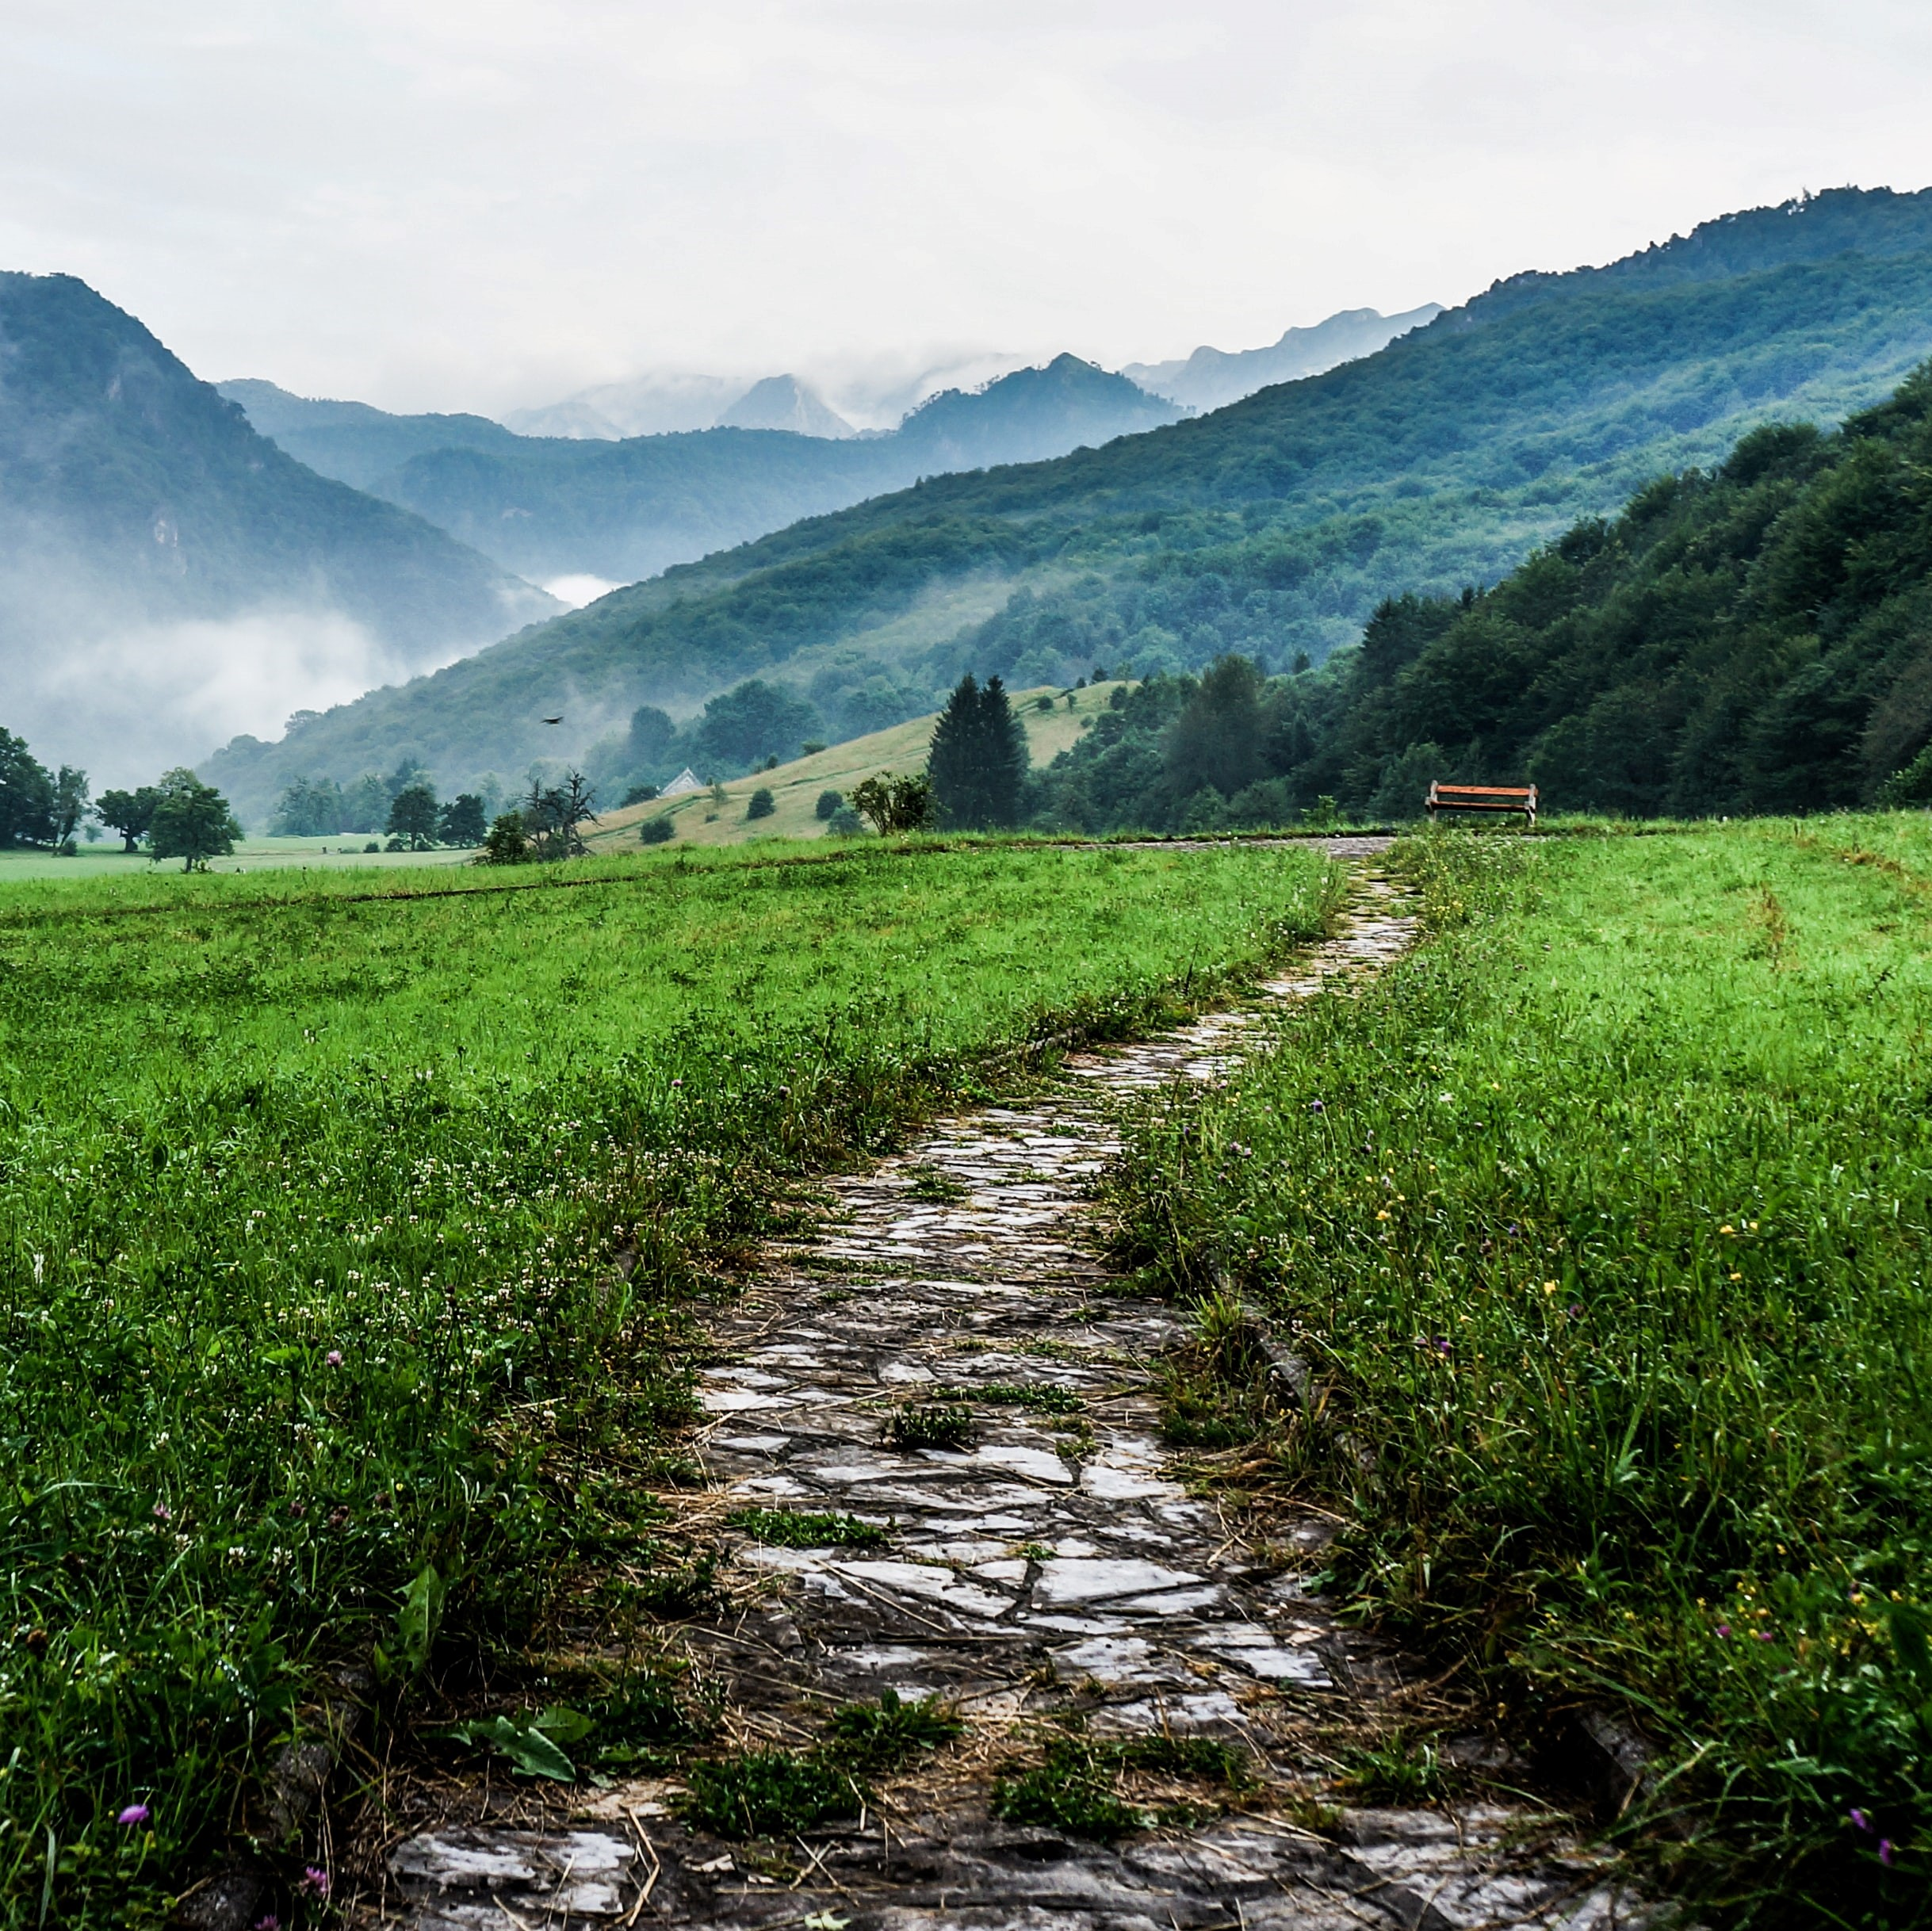 A cobblestone path extending through a valley, with mountains in the background.